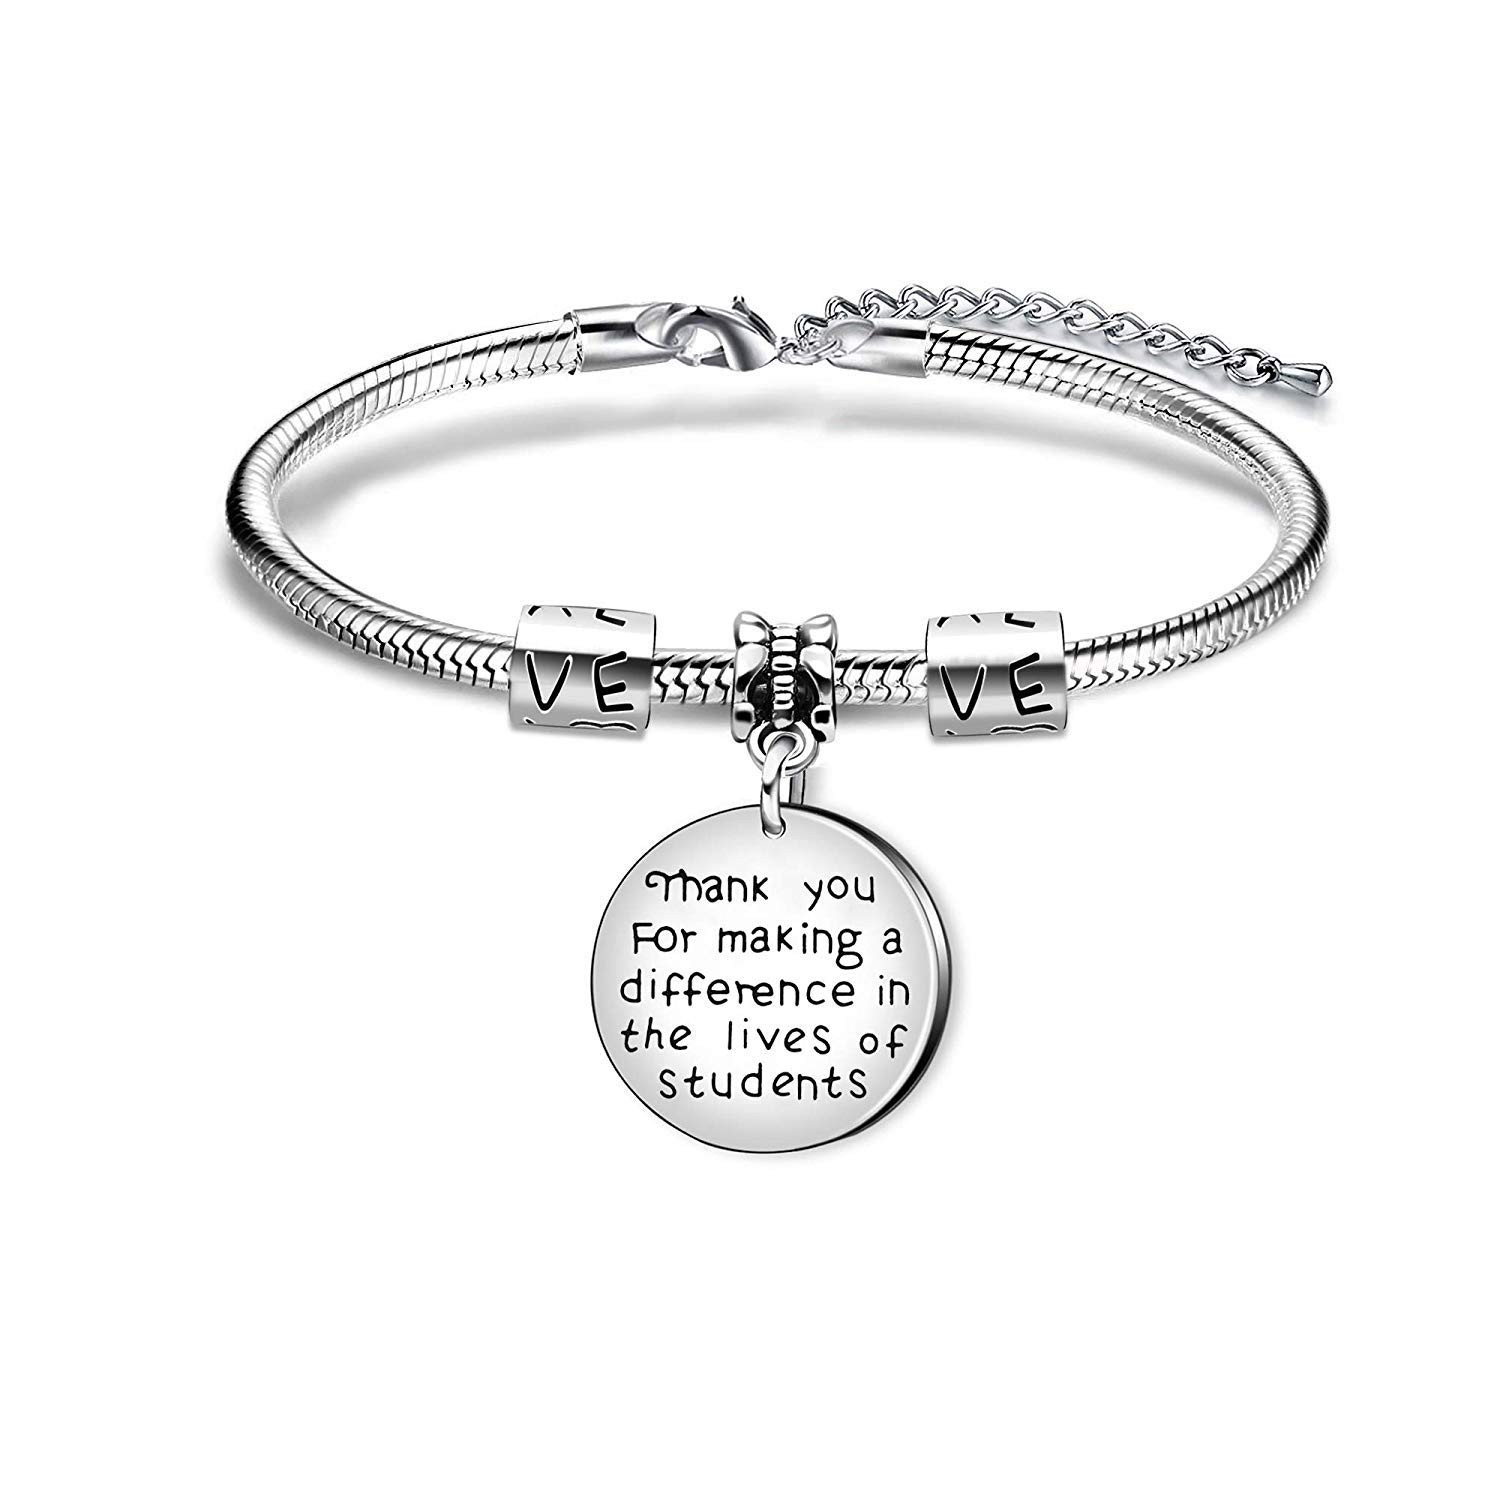 GTHYUUI Bangle Bracelets Student Graduation Gifts from Teacher Thank You for Making a Difference in The Lives of Students